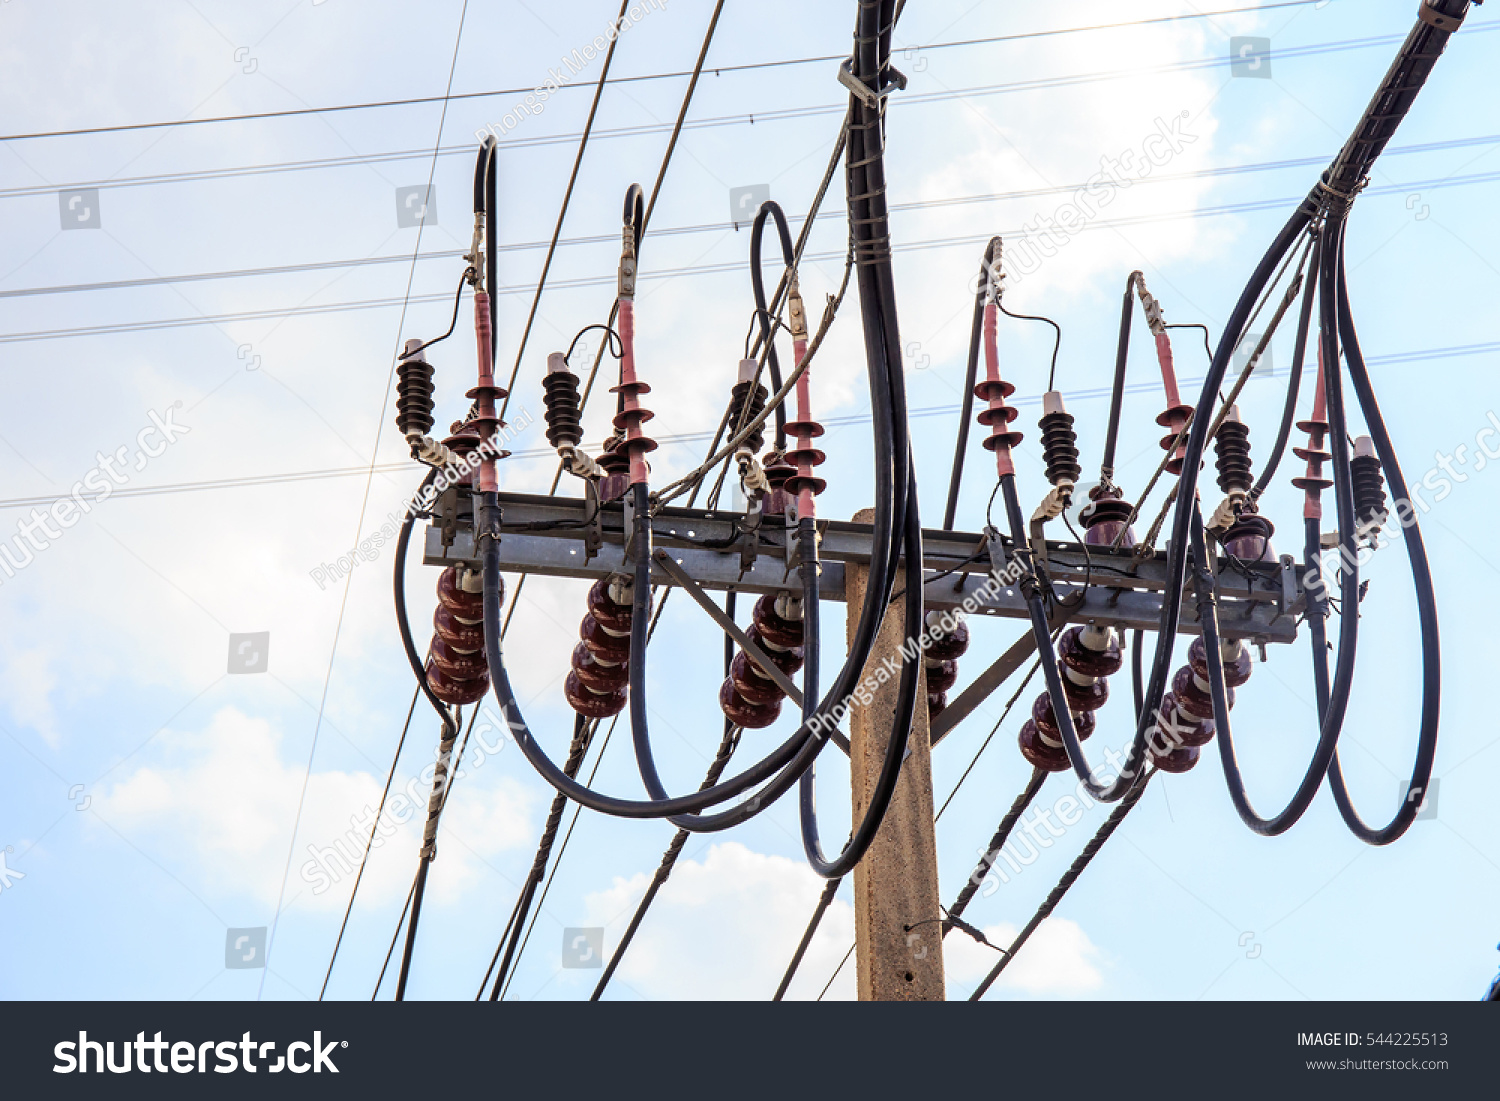 Electric Pole Wires Buck Arm Type Stock Photo (Royalty Free ...